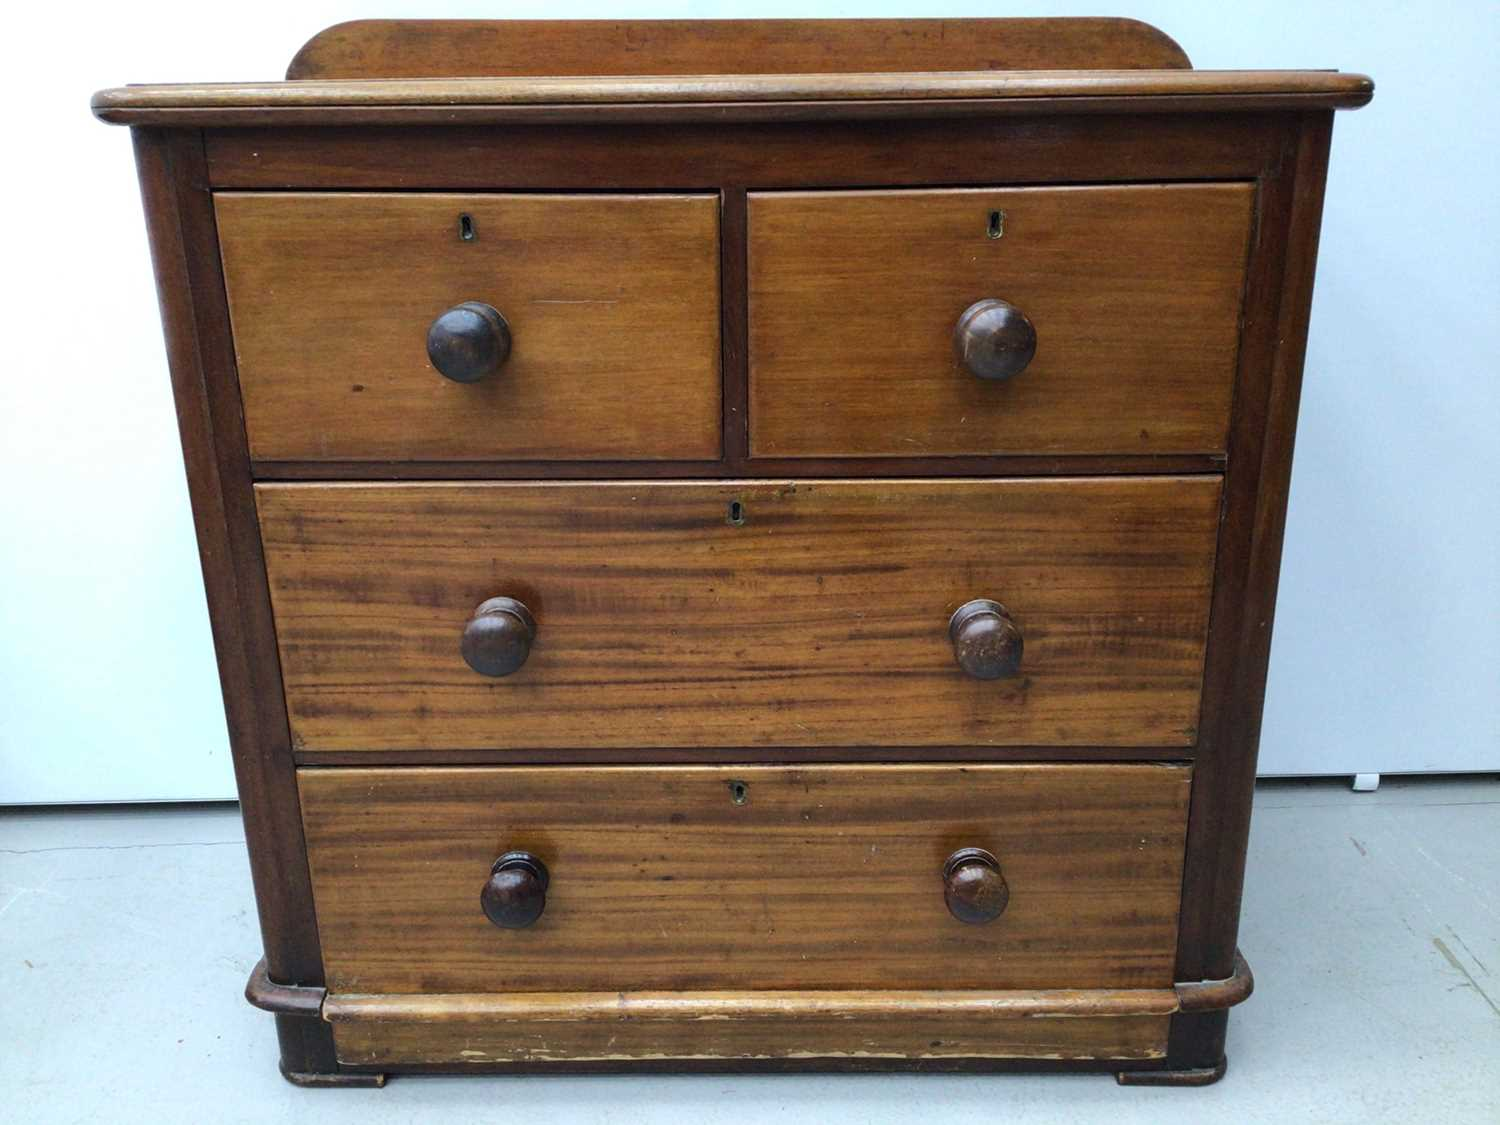 Victorian mahogany chest of two short and two long drawers 89cm wide x 46cm deep x 90 cm high - Image 3 of 5